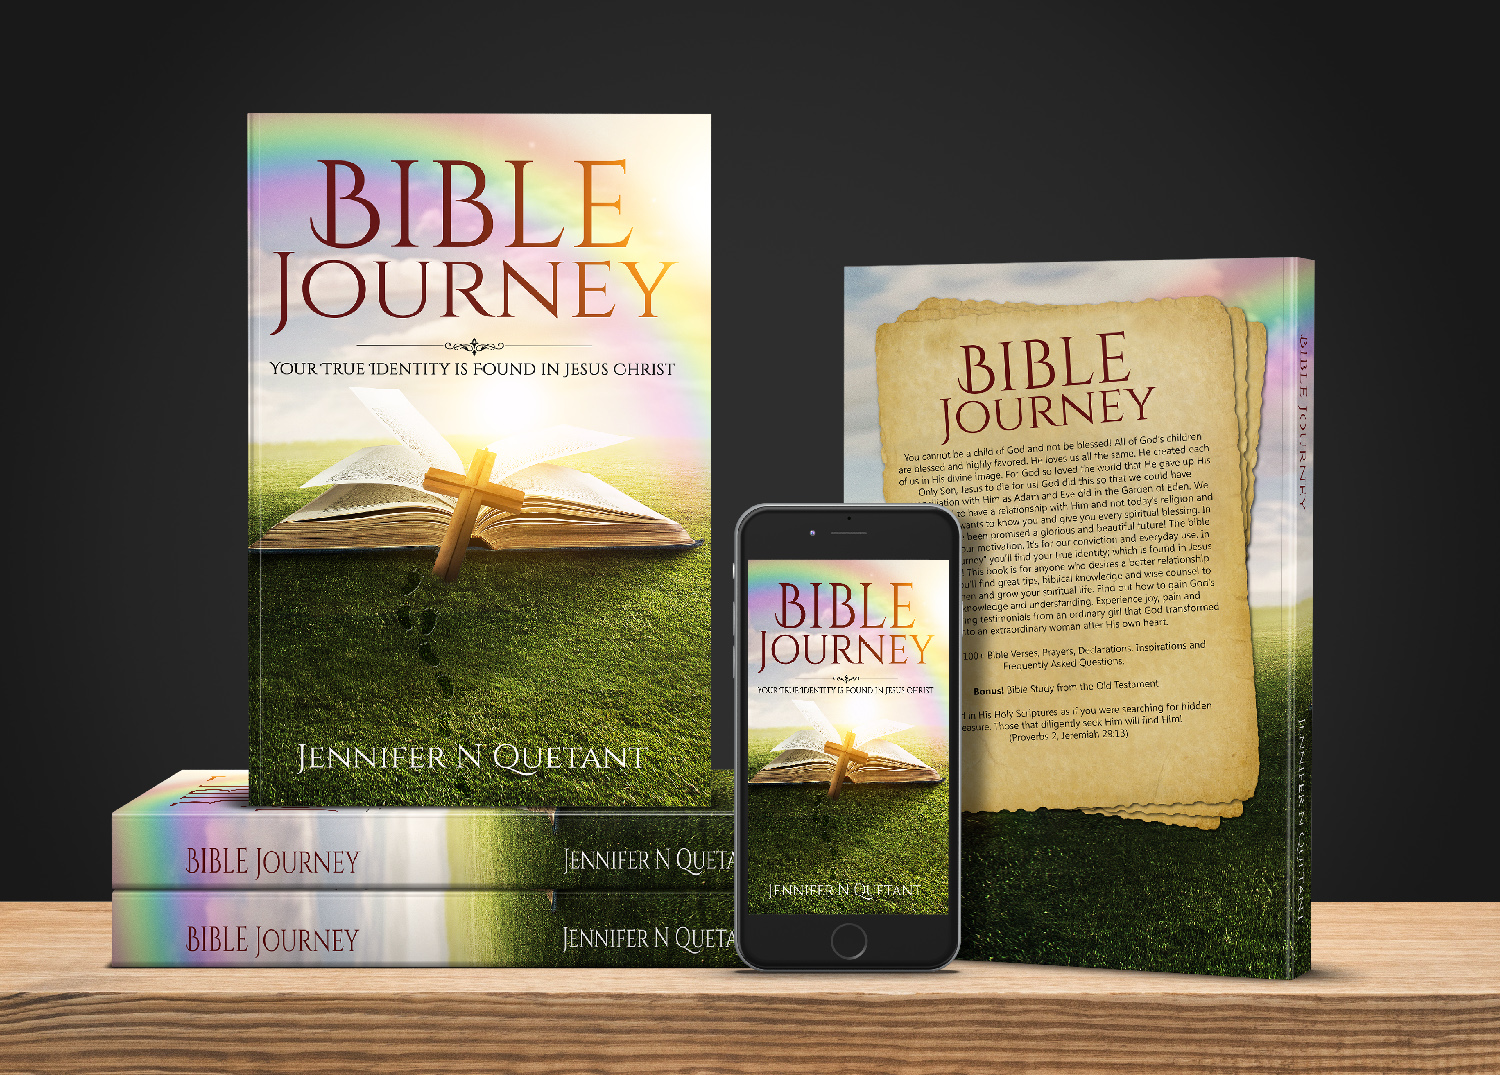 bible journey, amazon, best seller, ebook, kindle, spiritual growth, christian faith, religious